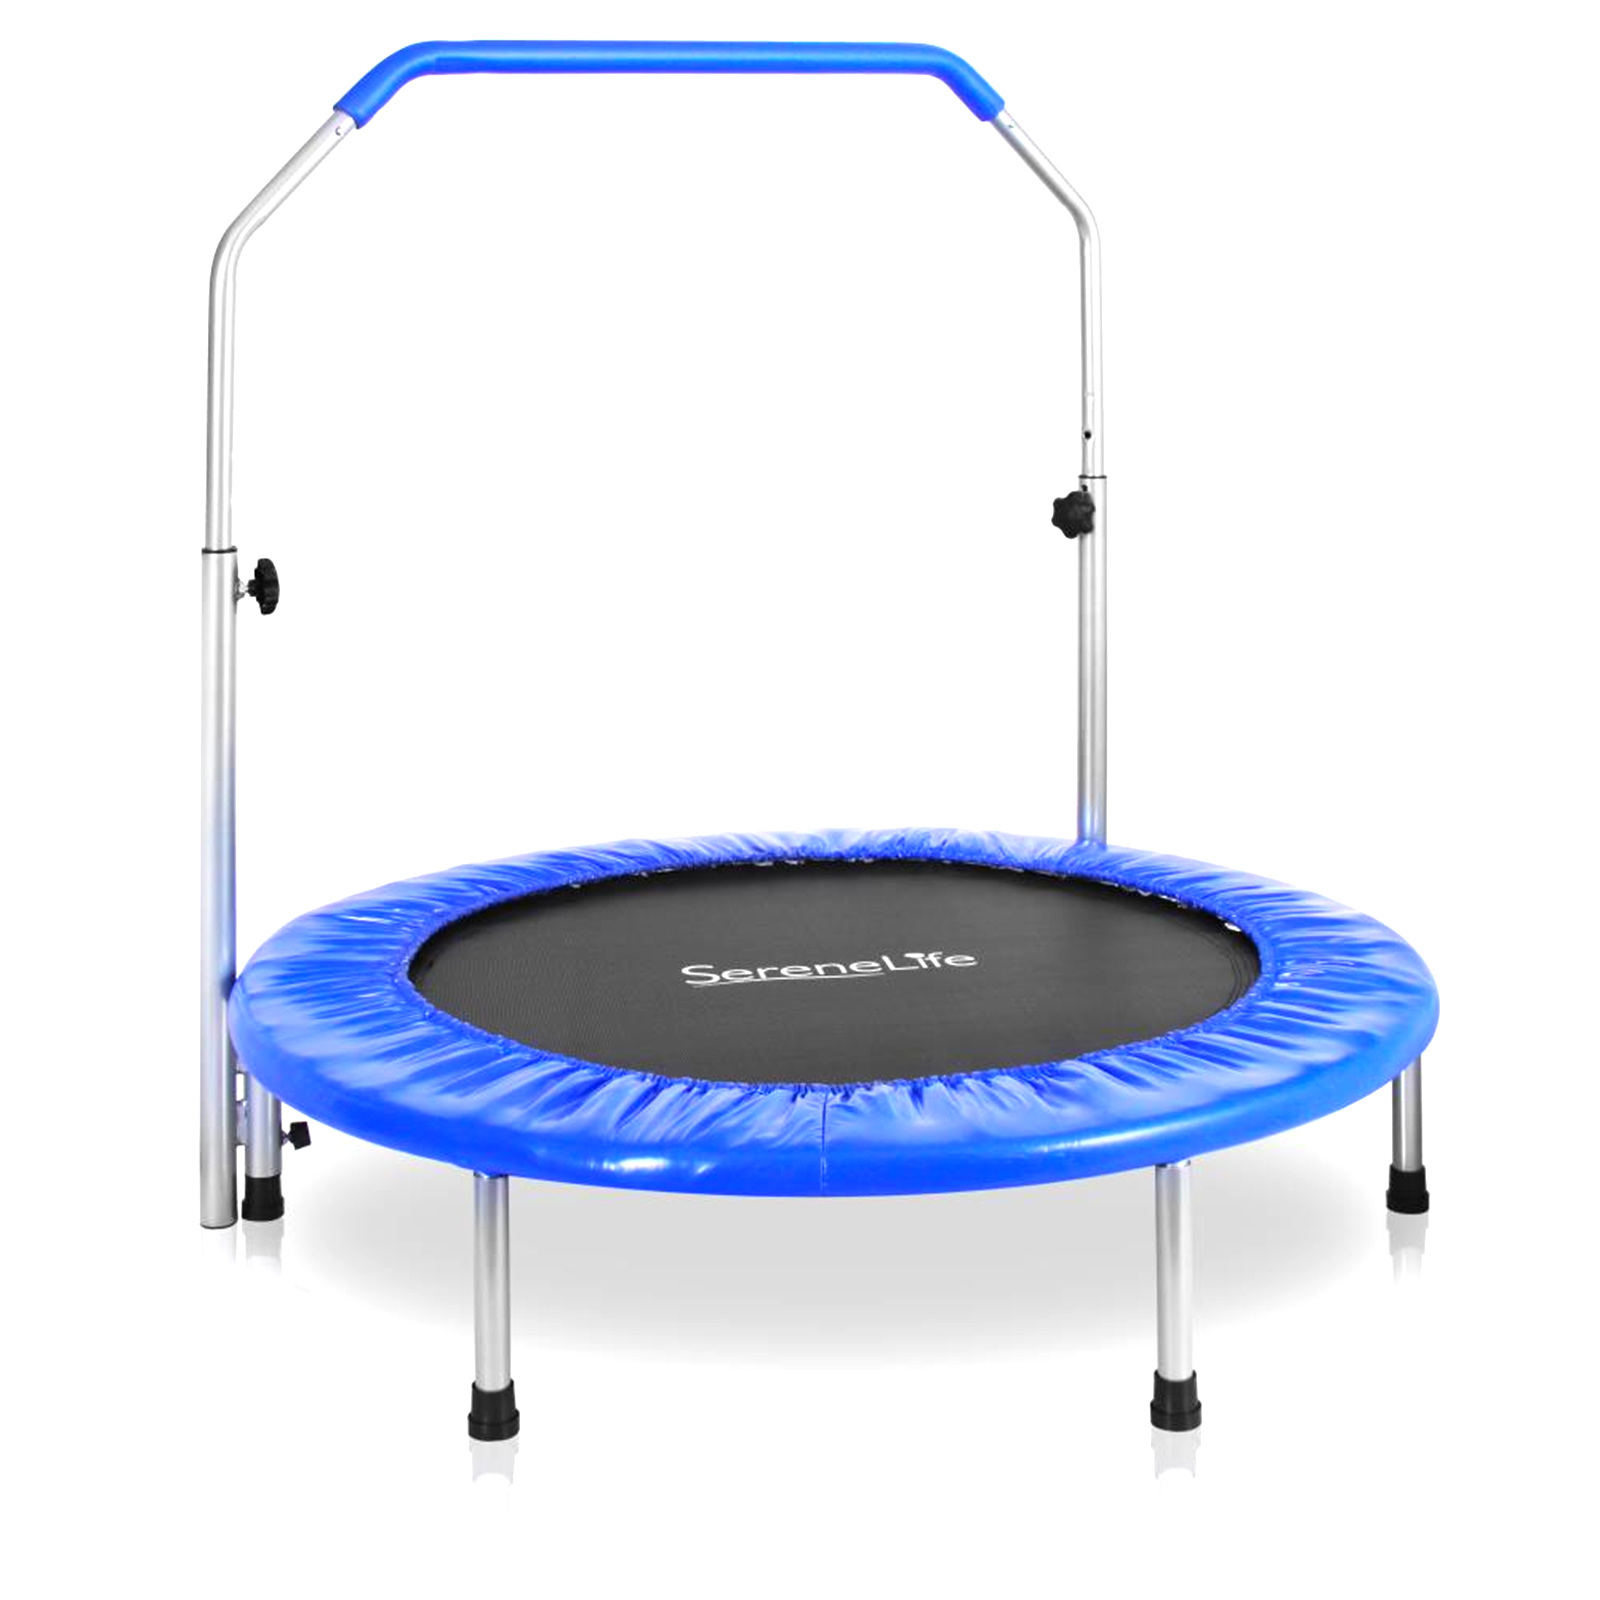 SereneLife Sports Adult Size Trampoline